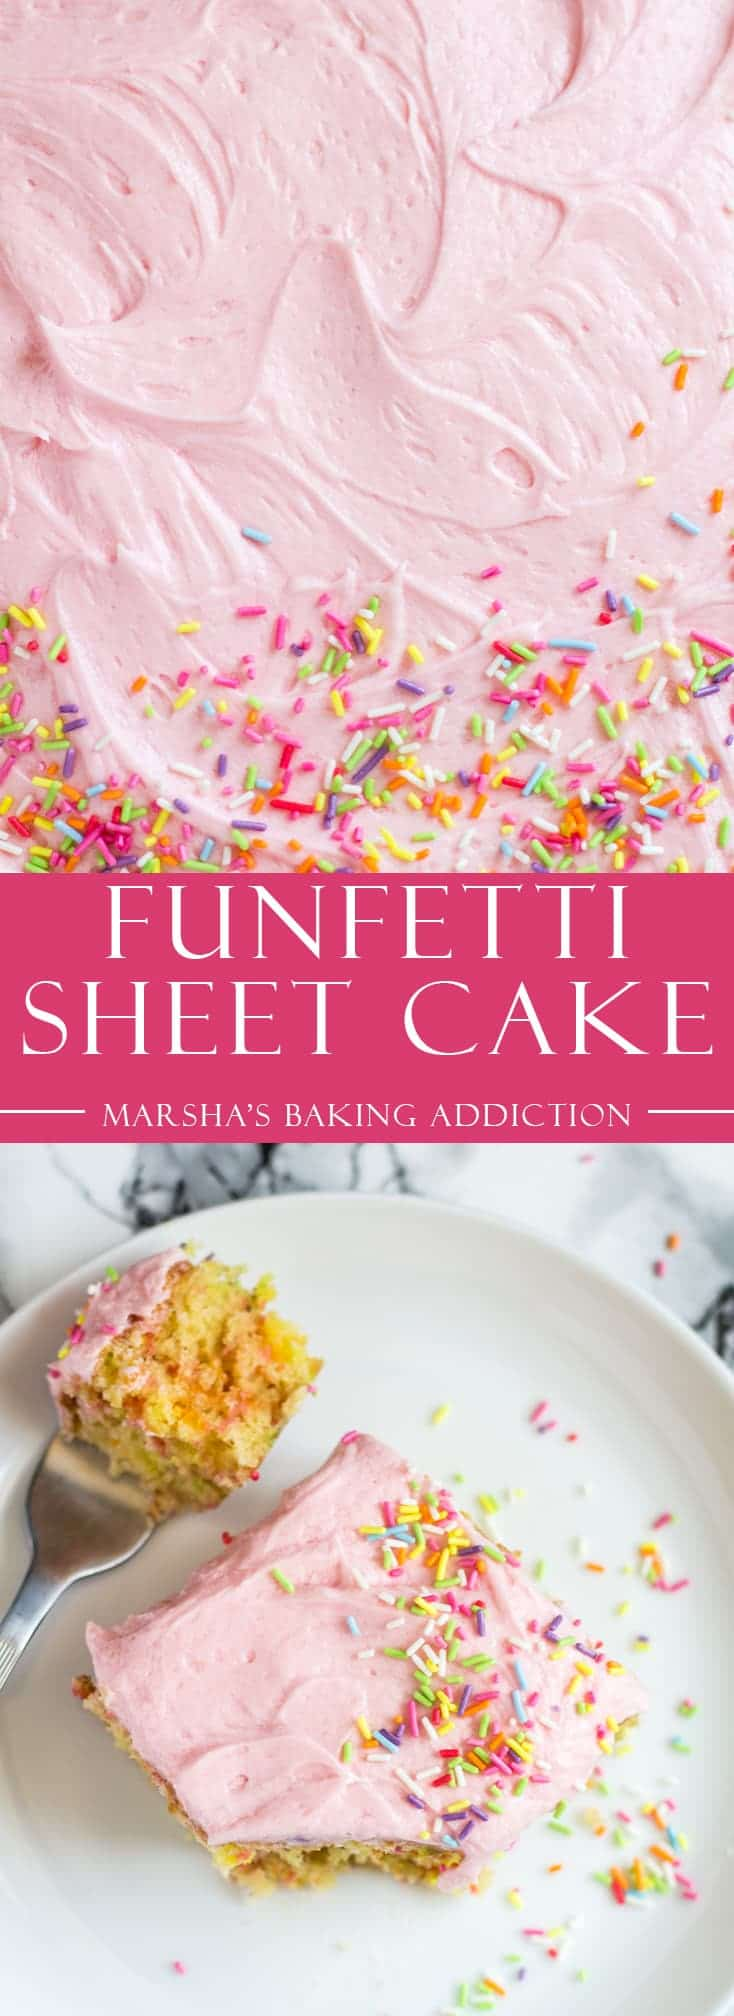 Funfetti Sheet Cake - Deliciously moist and fluffy vanilla sheet cake, loaded with sprinkles, and topped with a creamy vanilla buttercream frosting!